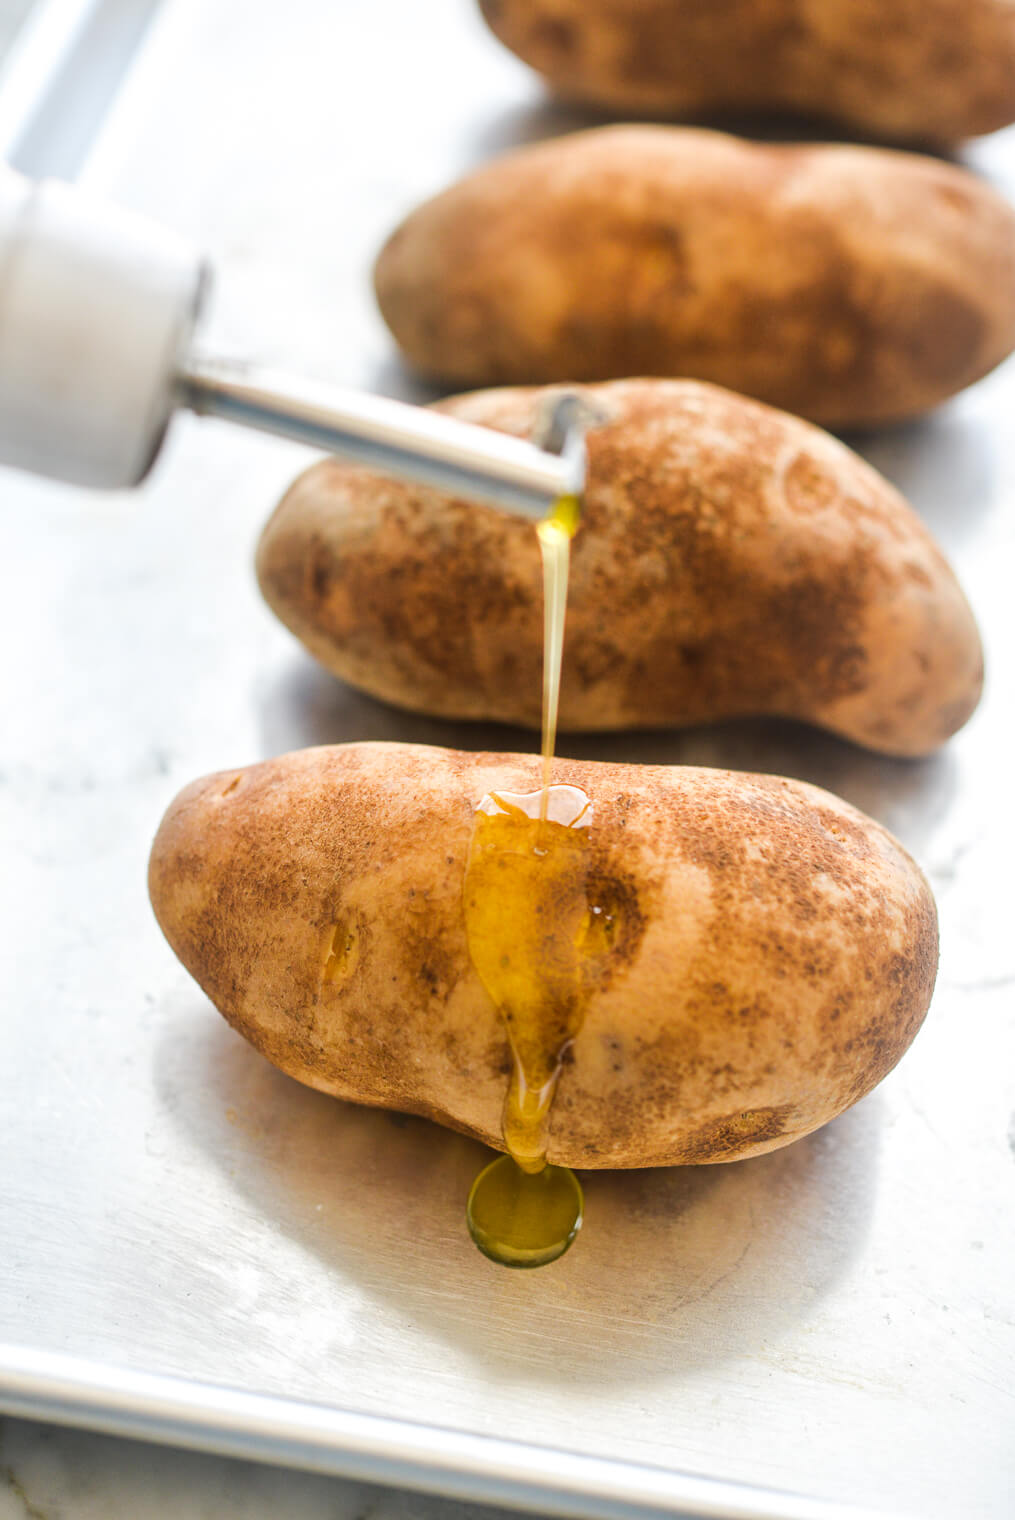 4 raw russet potatoes being drizzled with olive oil on a metal sheet pan